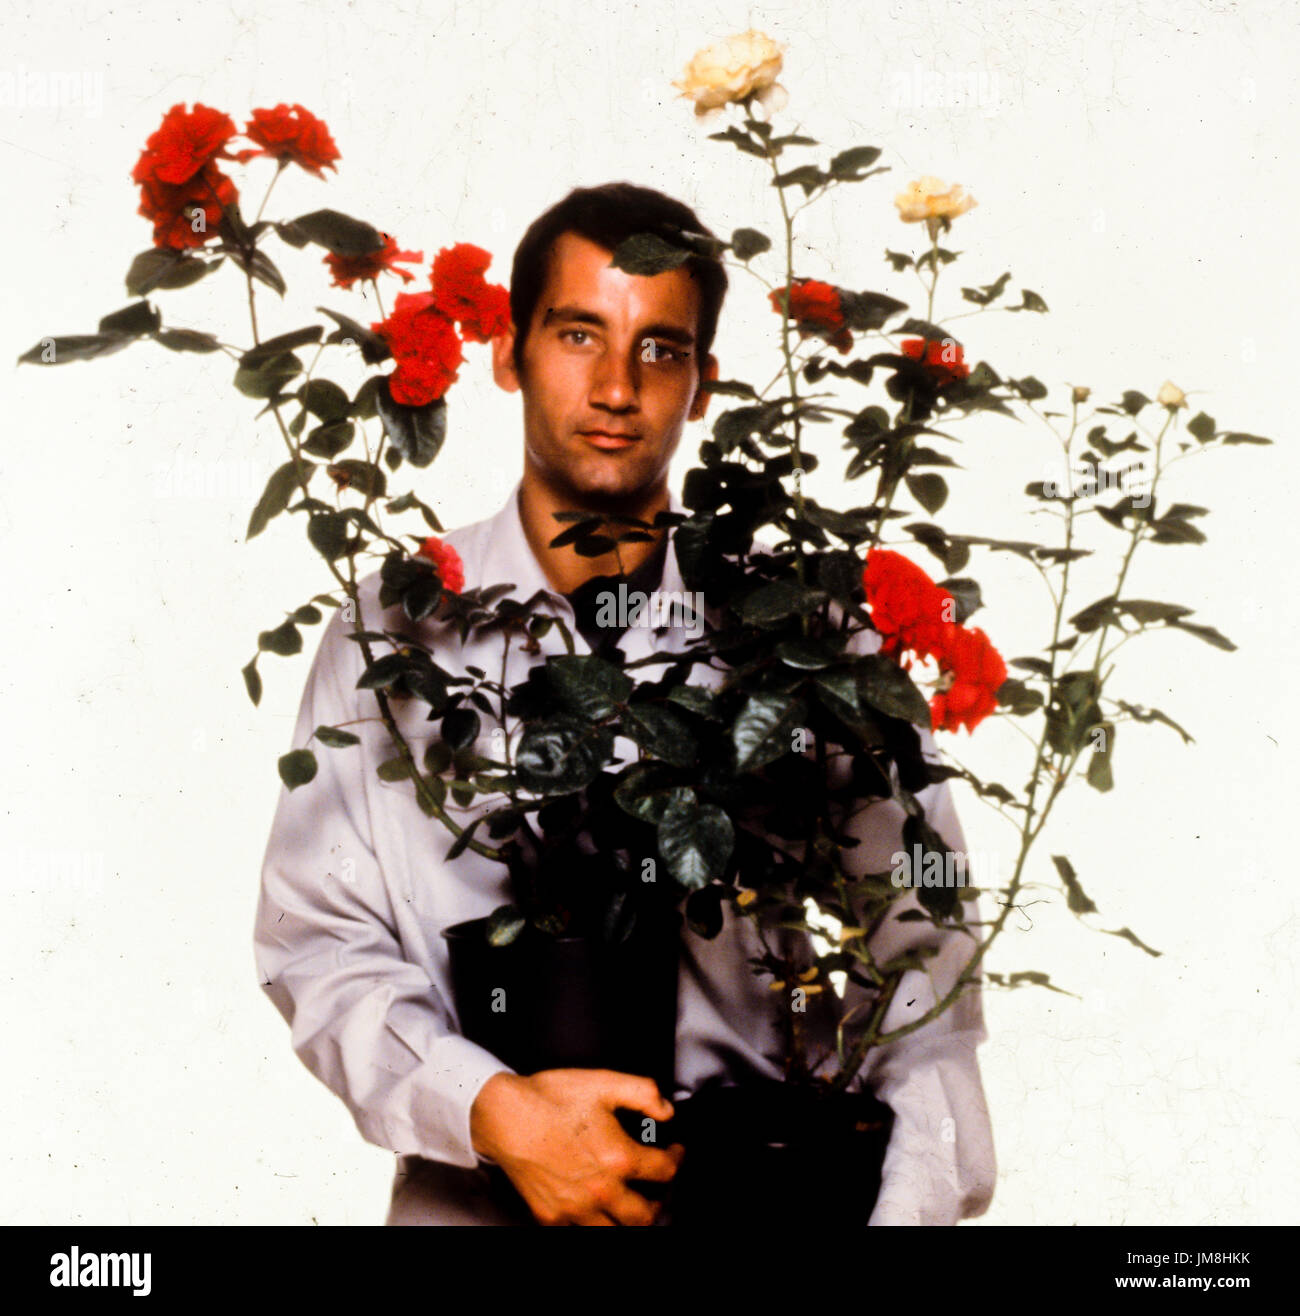 Clive Owen, greenfingers, 2001 Immagini Stock